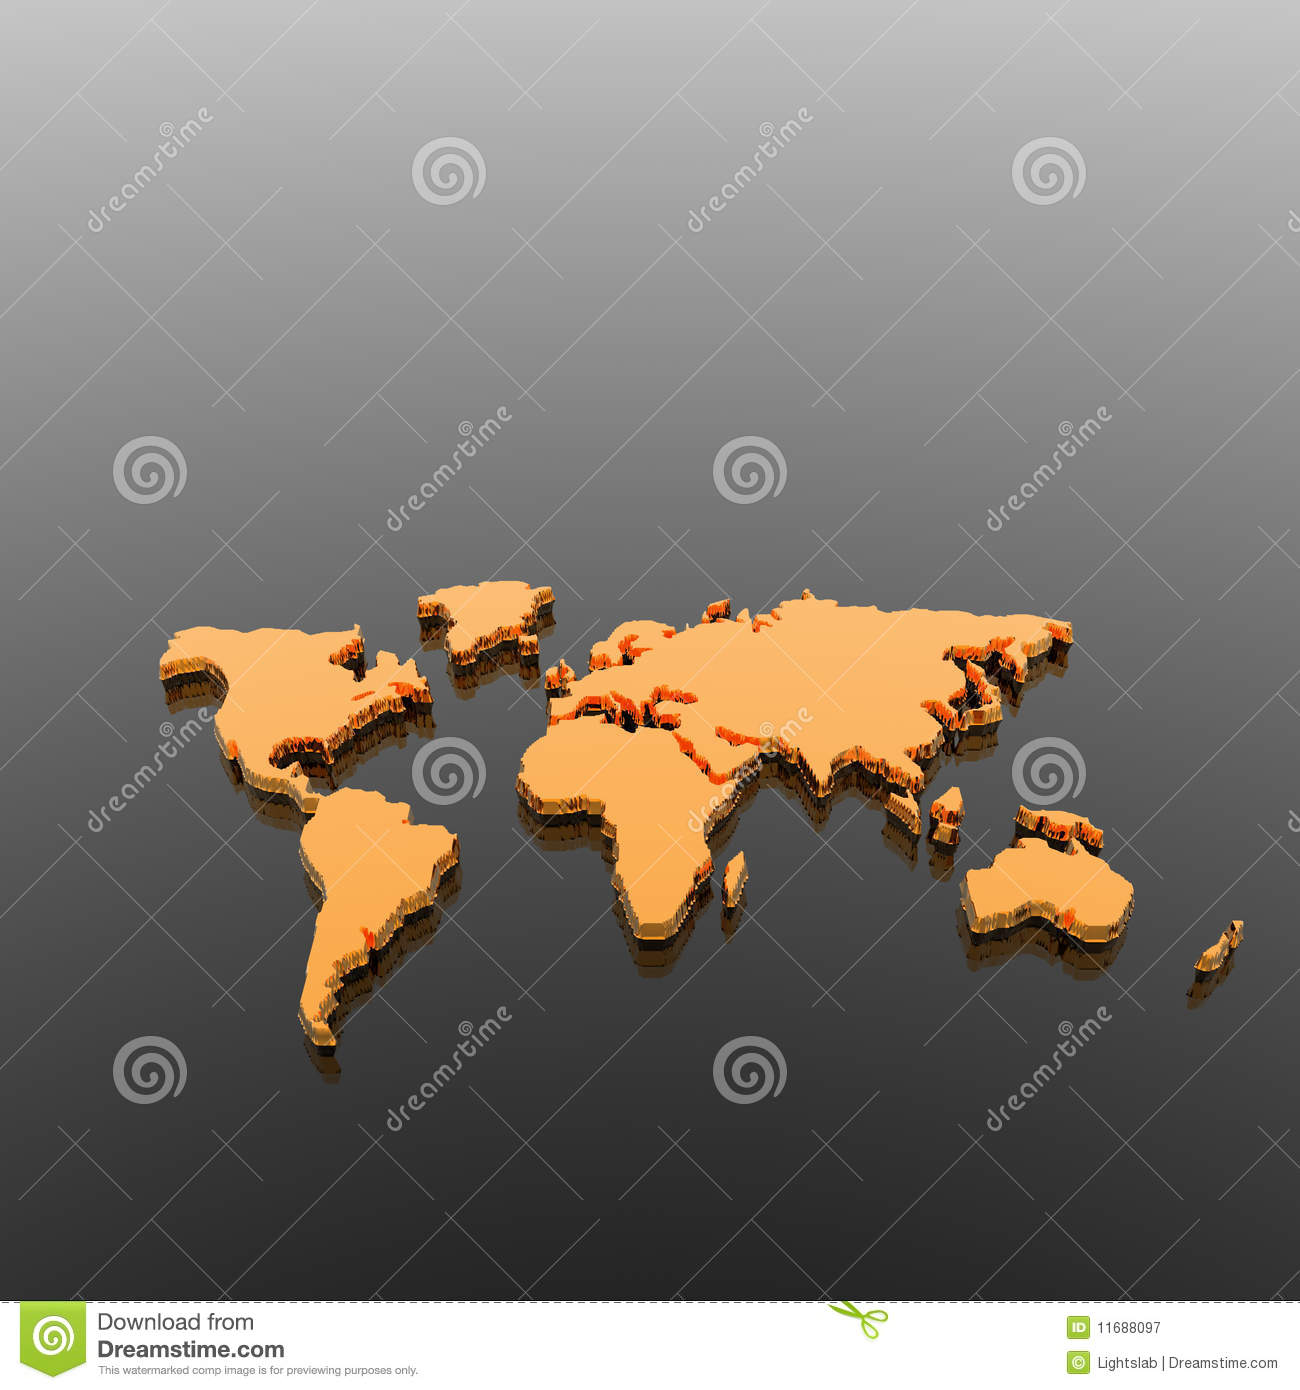 Model of the geographical world map stock illustration model of the geographical world map continents illustration gumiabroncs Images